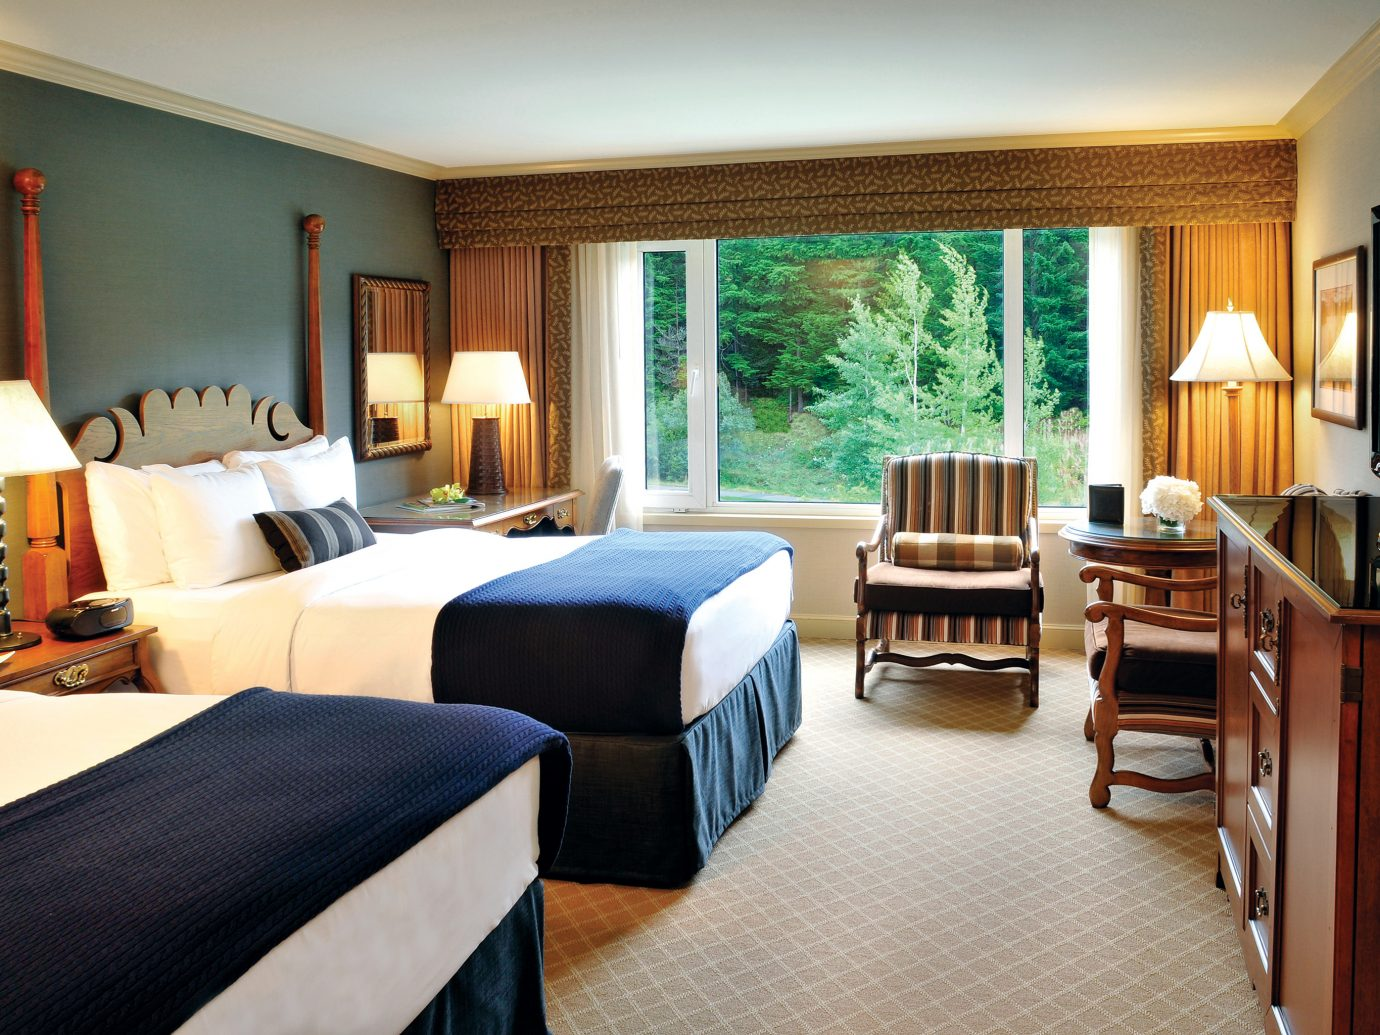 Bedroom at Fairmont Chateau Whistler